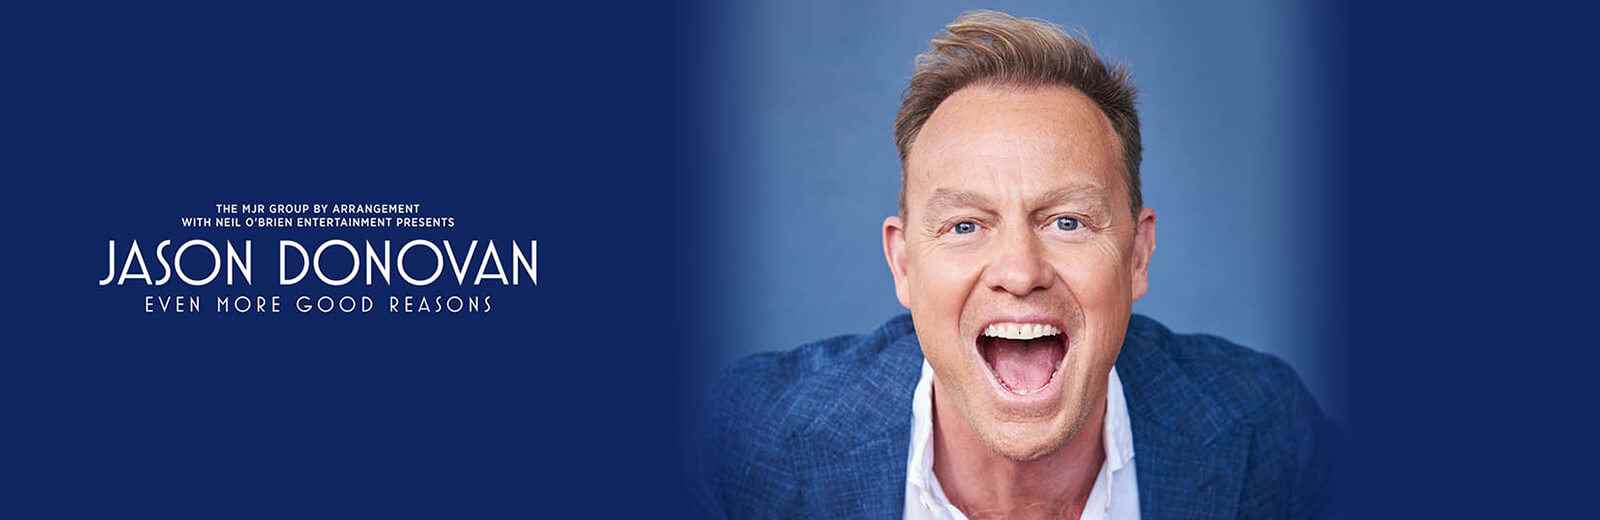 Jason Donovan - More Good Reasons